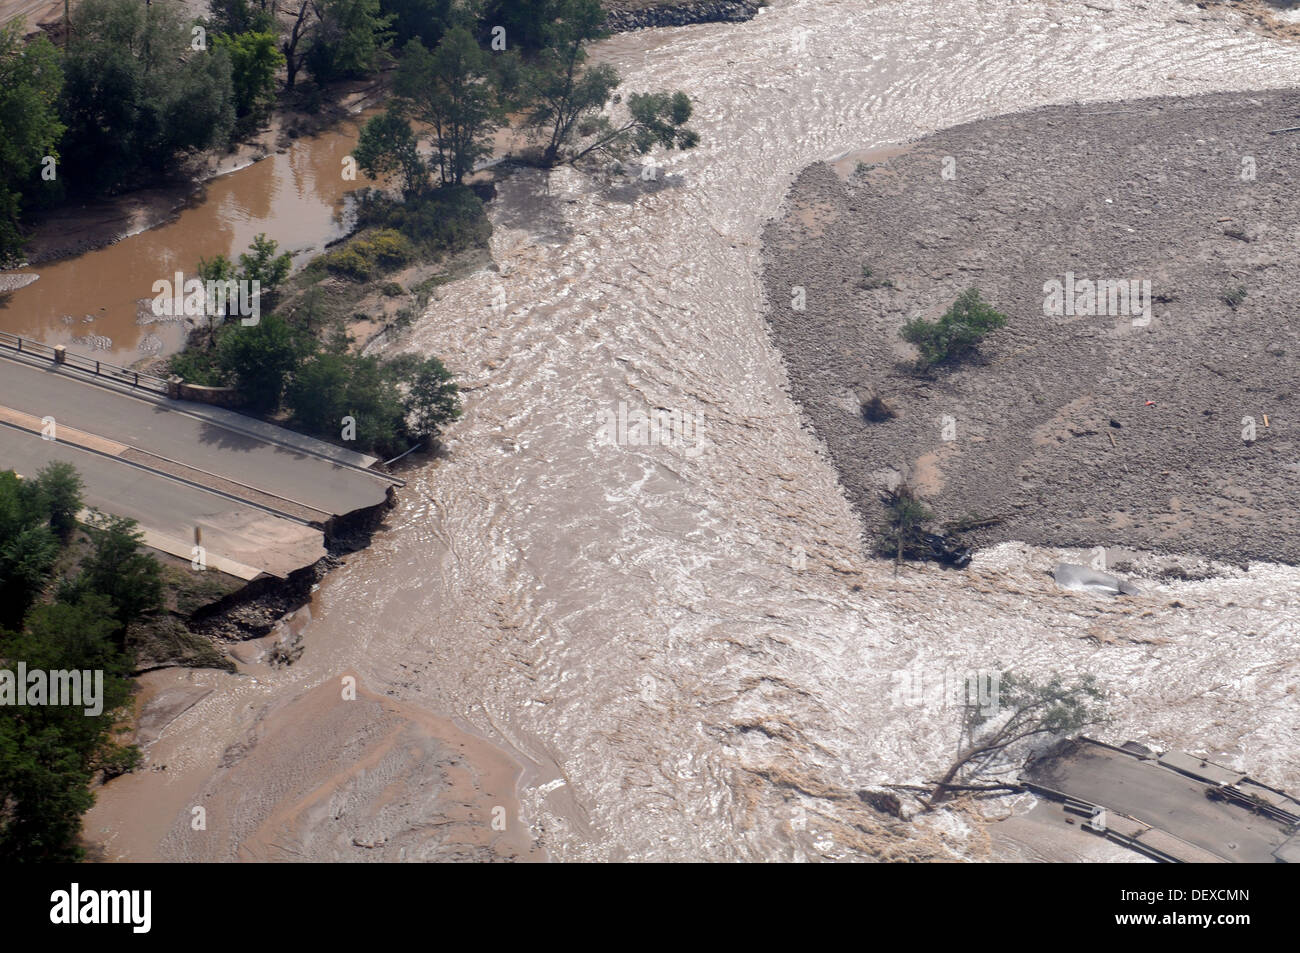 A view of a road destroyed by heavy rains, with some areas receiving as much as 18 inches in a 24-hour period in Boulder, Colo., Sept. 14, 2013. U.S. Soldiers with the 2nd General Support Aviation Battalion, 4th Combat Aviation Brigade, 4th Infantry Divis - Stock Image